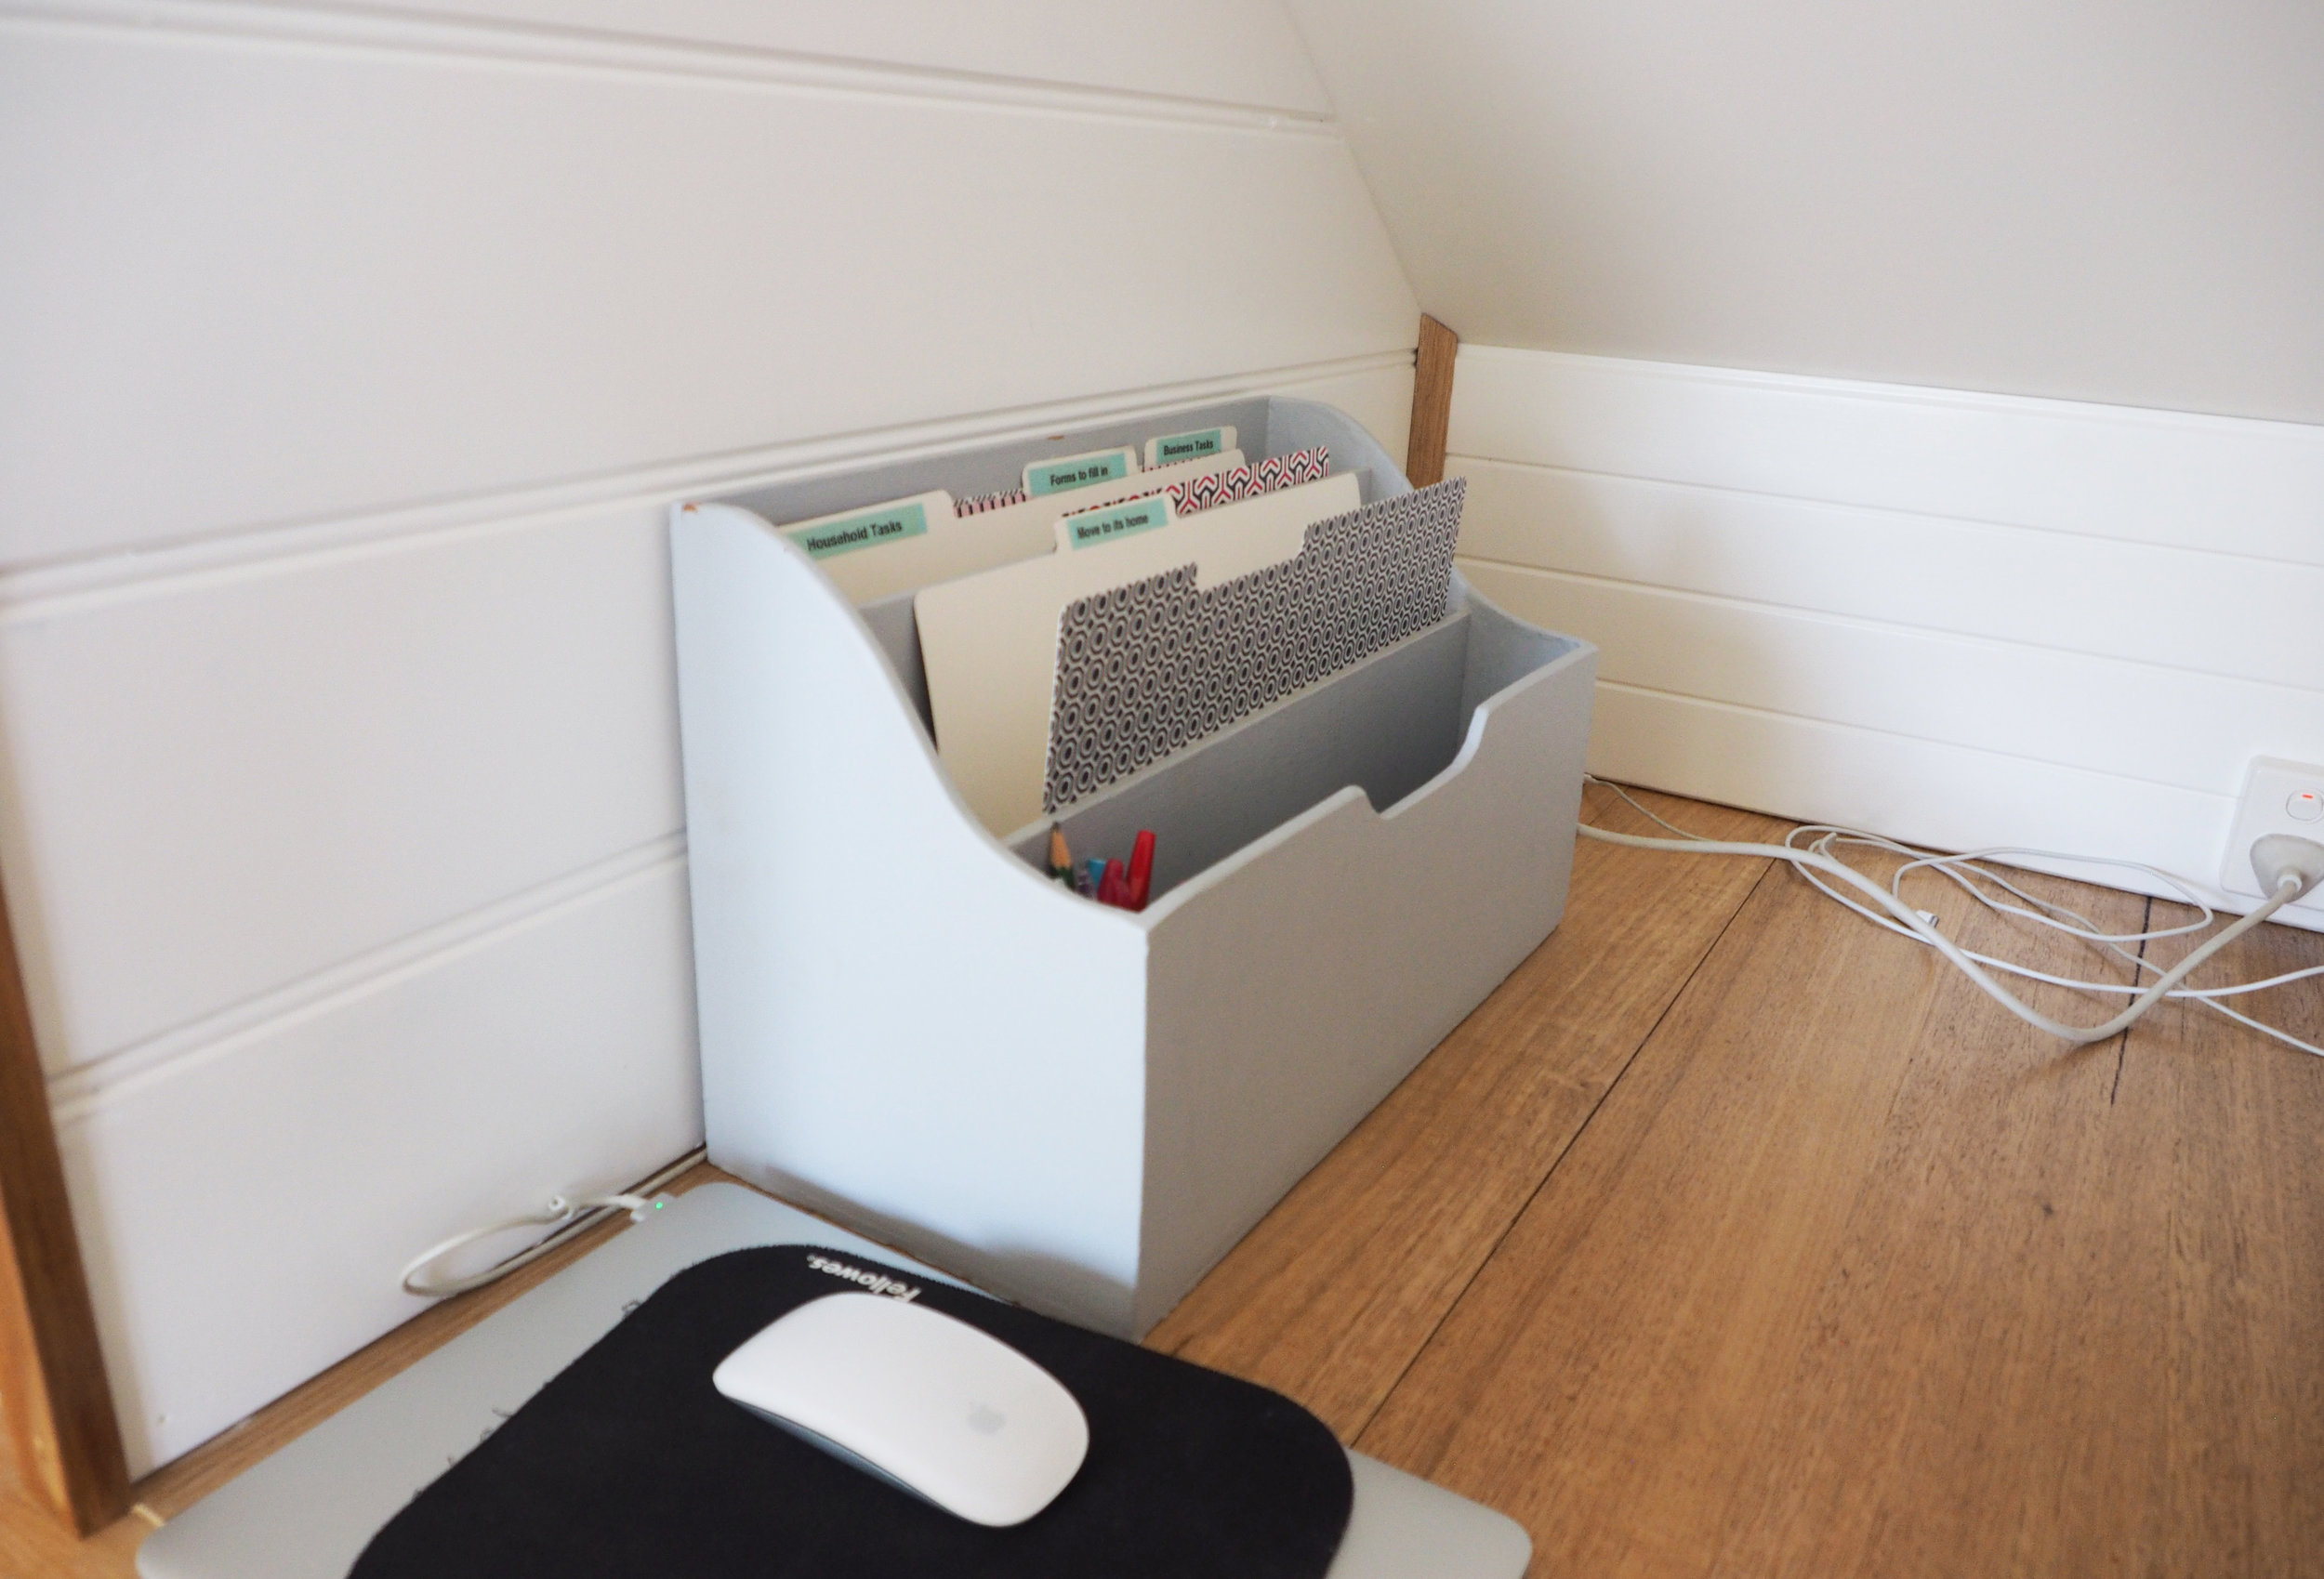 Get your incoming paperwork organised with an organised system - this paperwork organiser helps to categorize important tasks to be dealt with on a weekly basis {The Organised You}